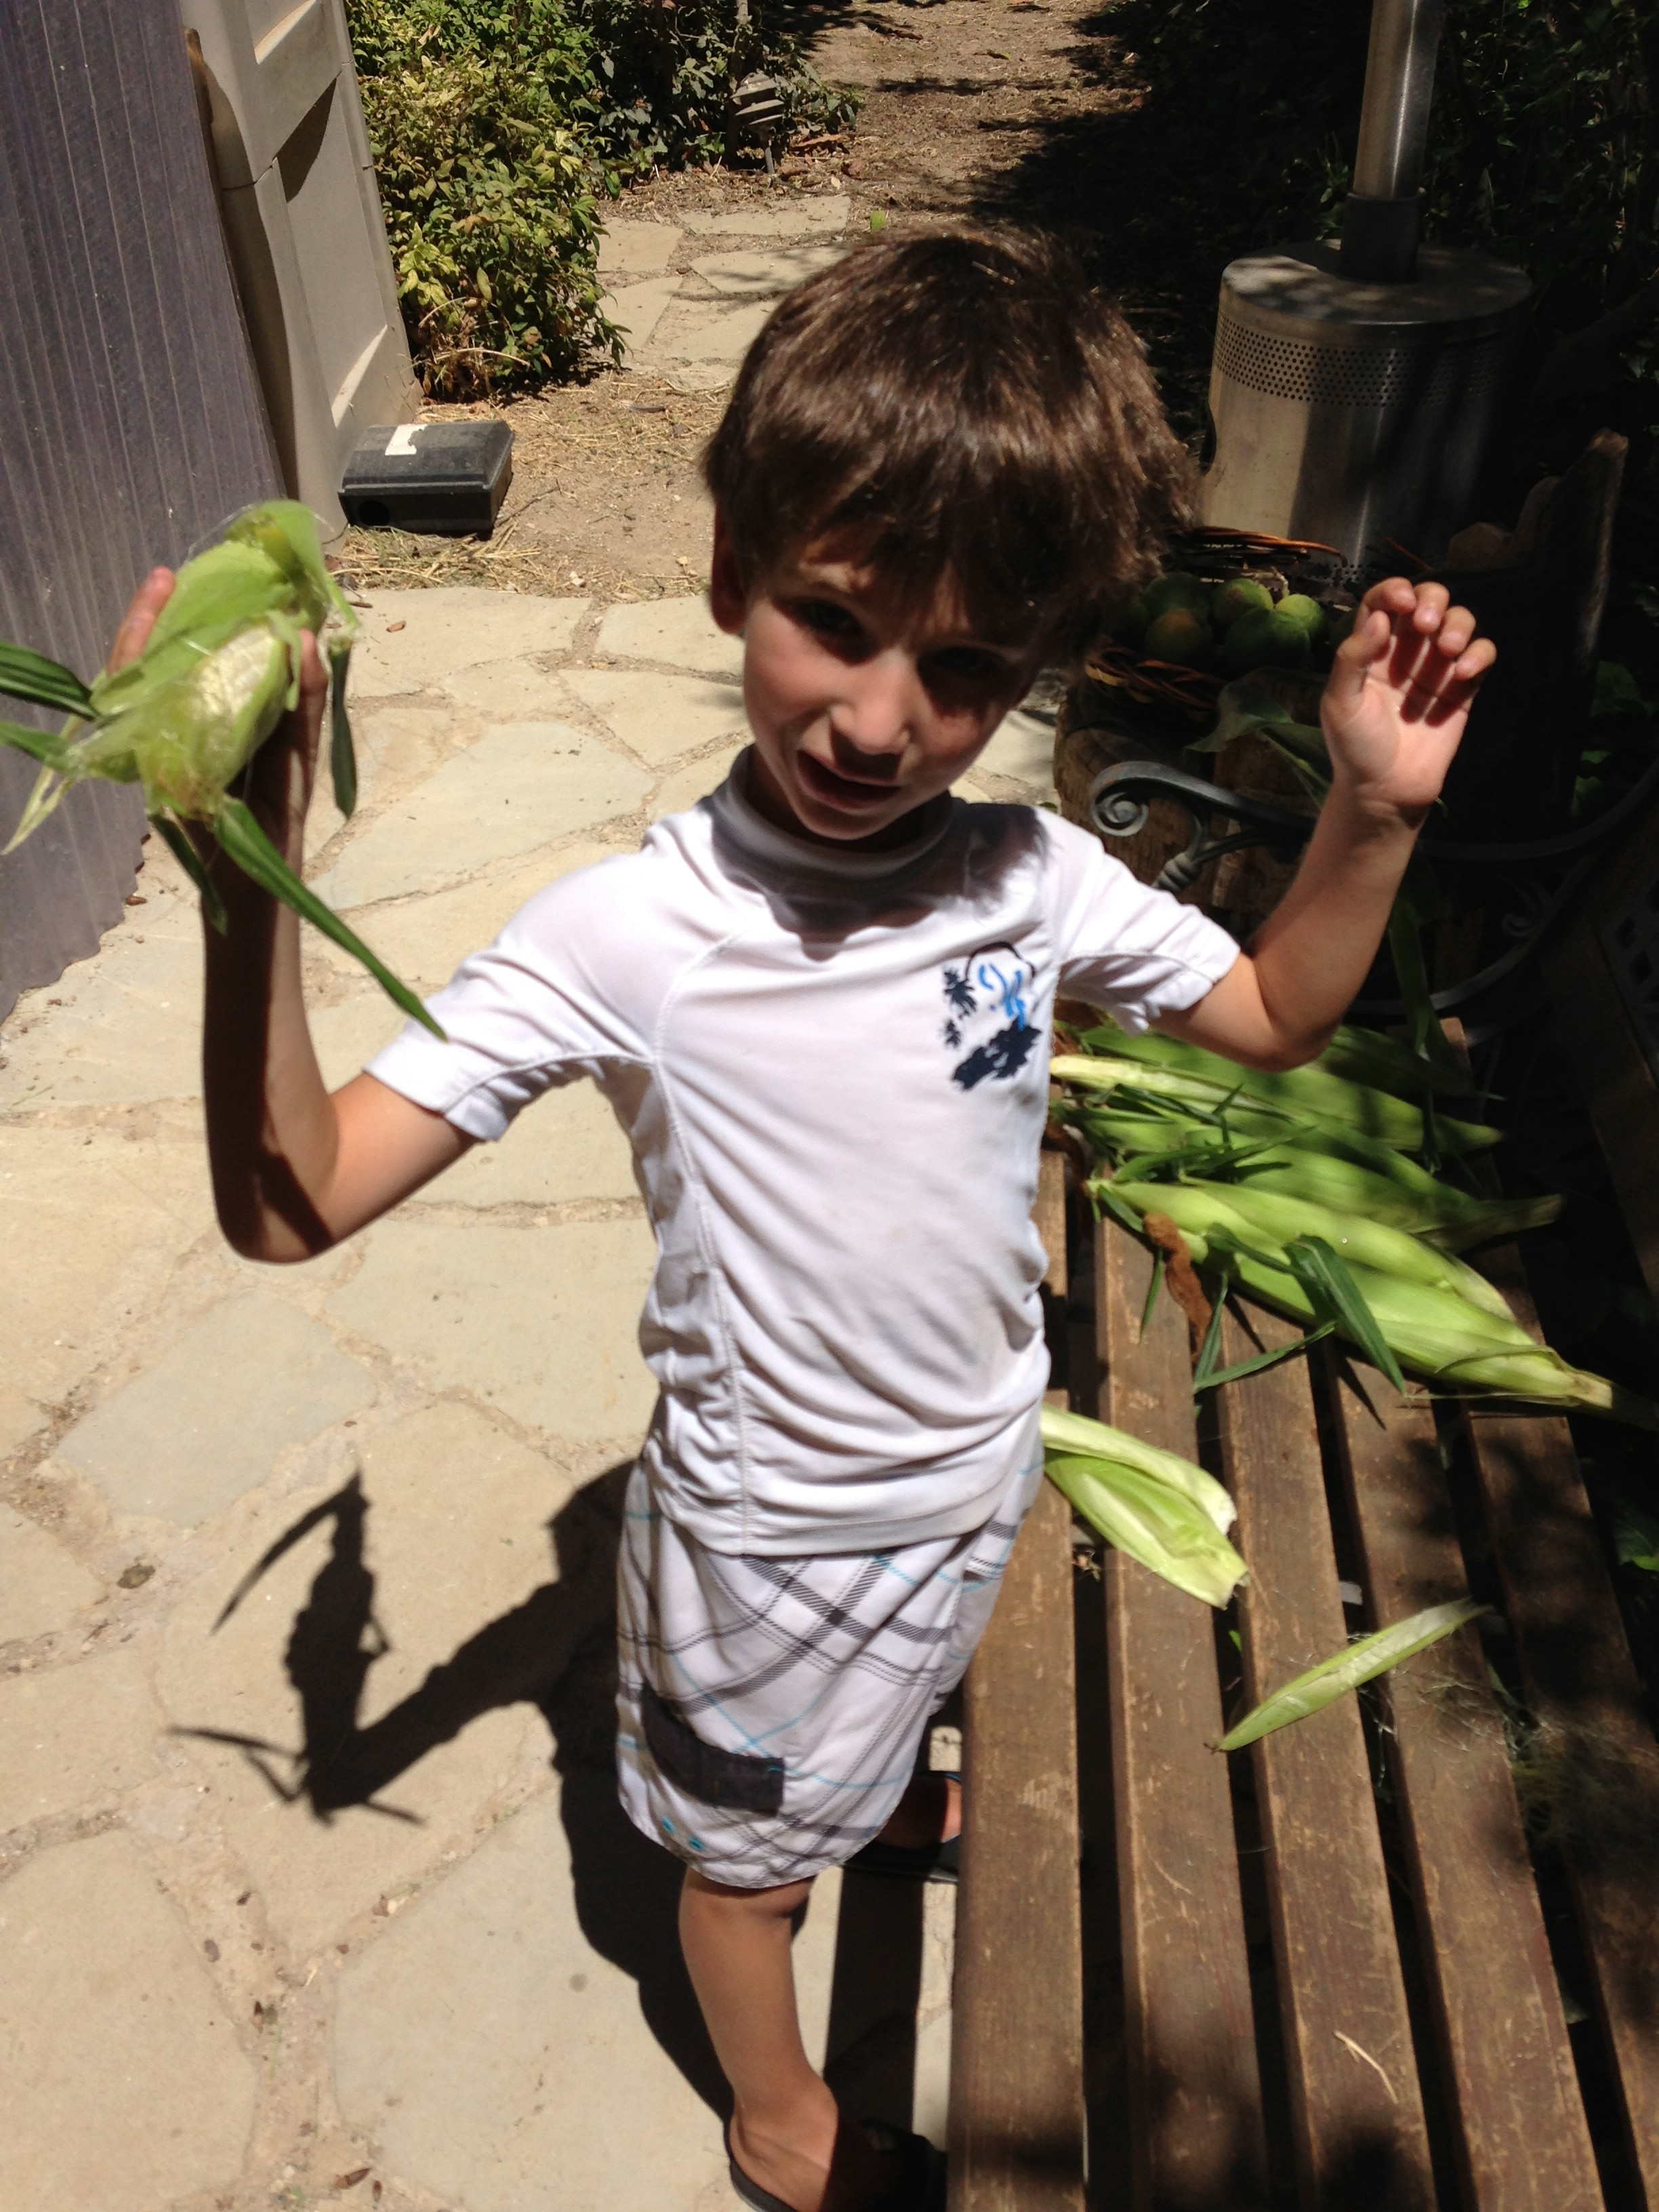 Jack shucking corn Sept 2013